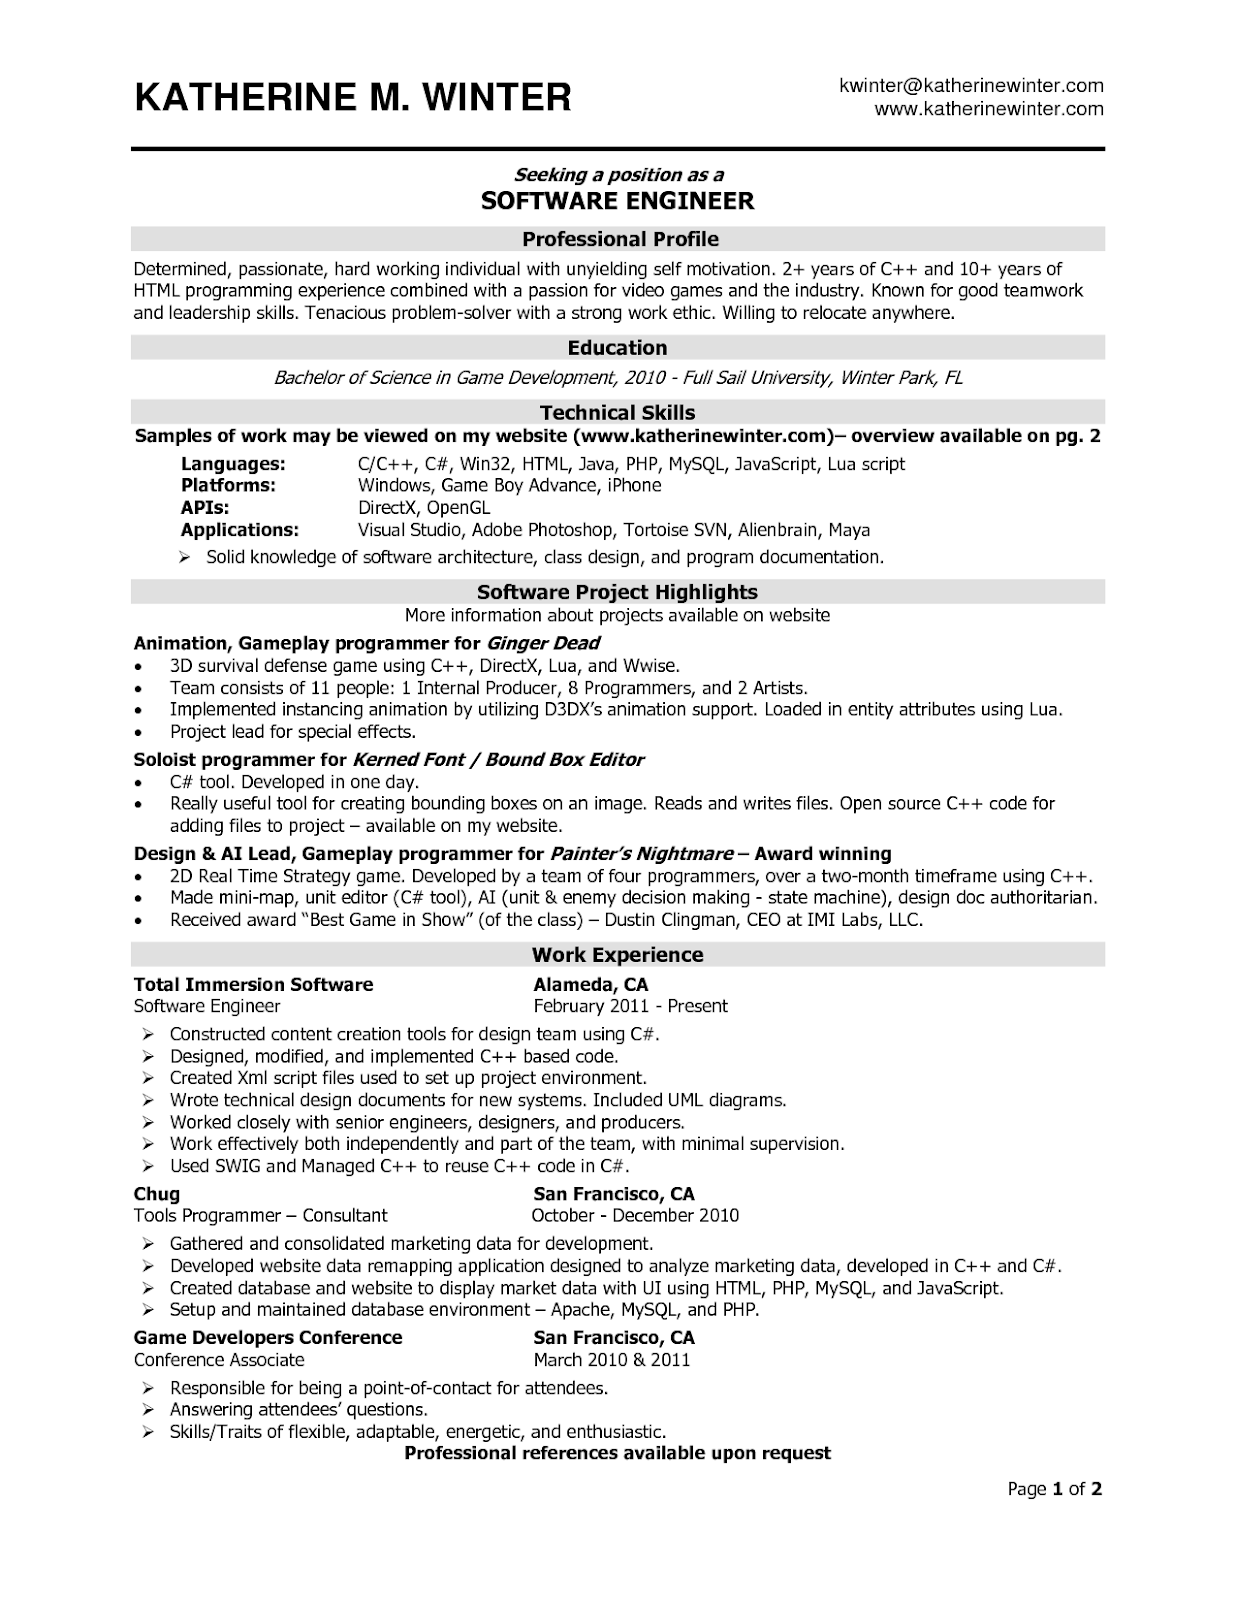 sample resume for software engineer software engineer resume samples sample resumes